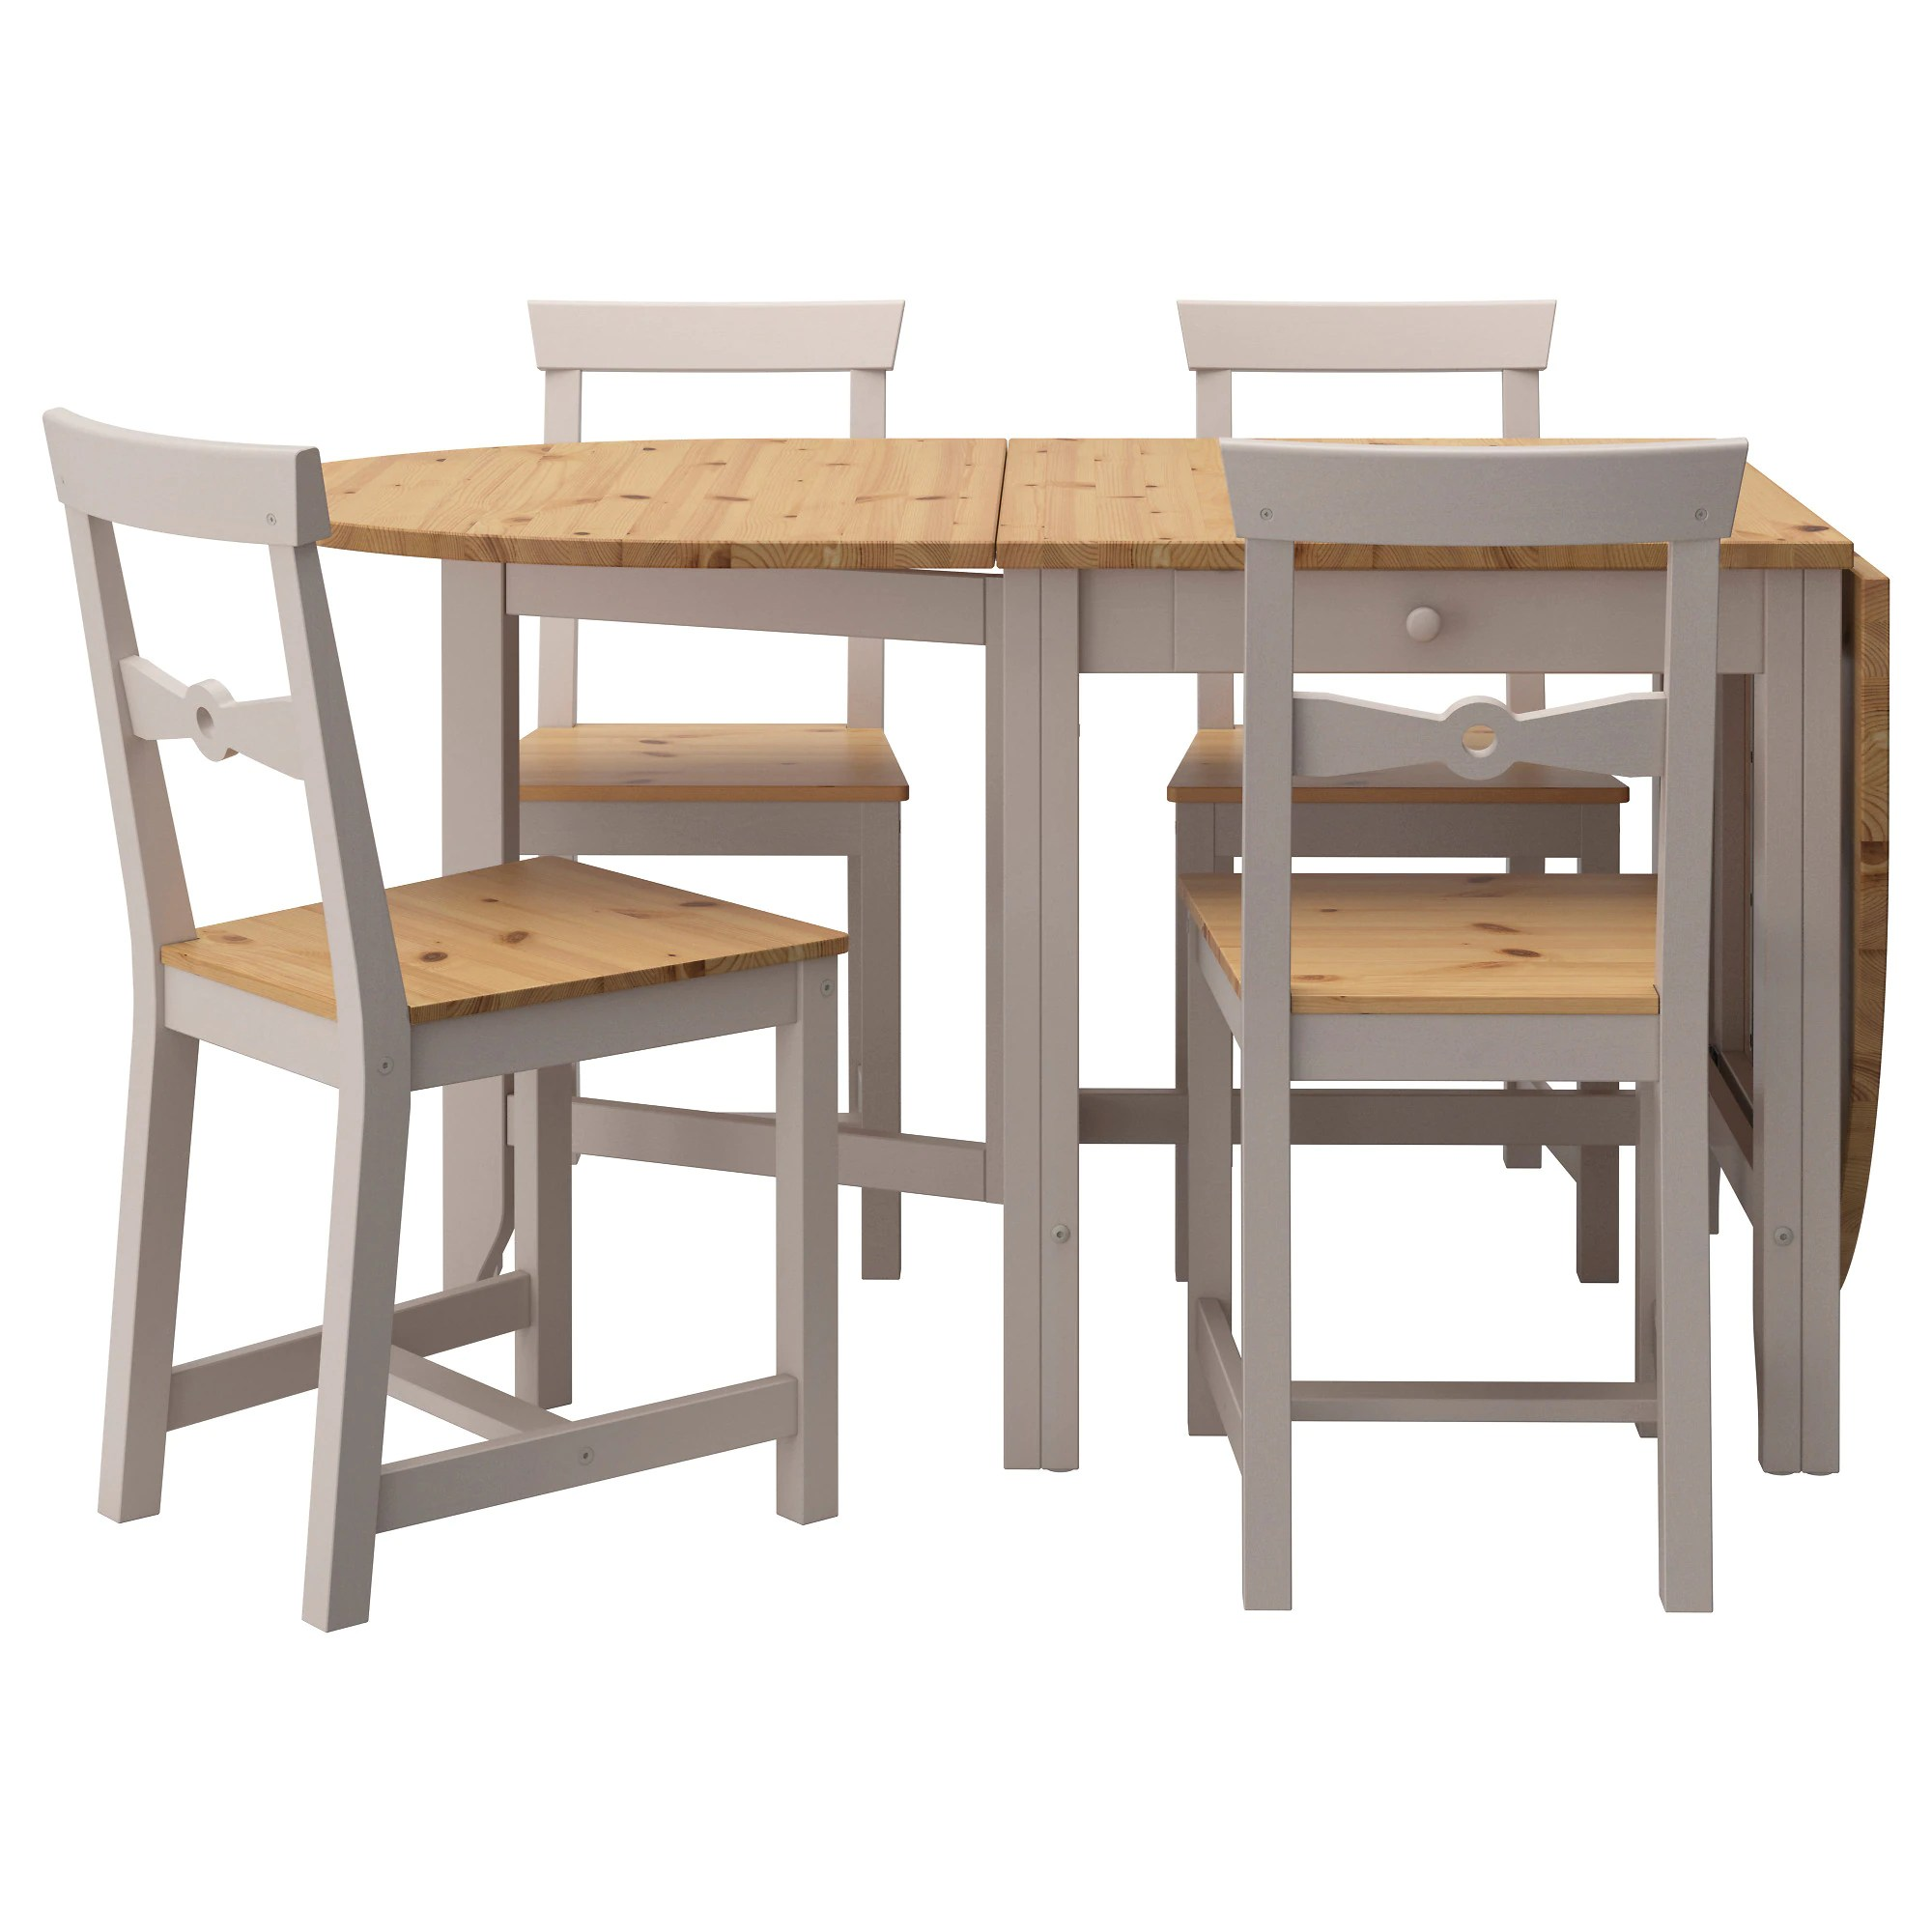 dinning room table and chairs best lounge chair gamleby 4 ikea feedback